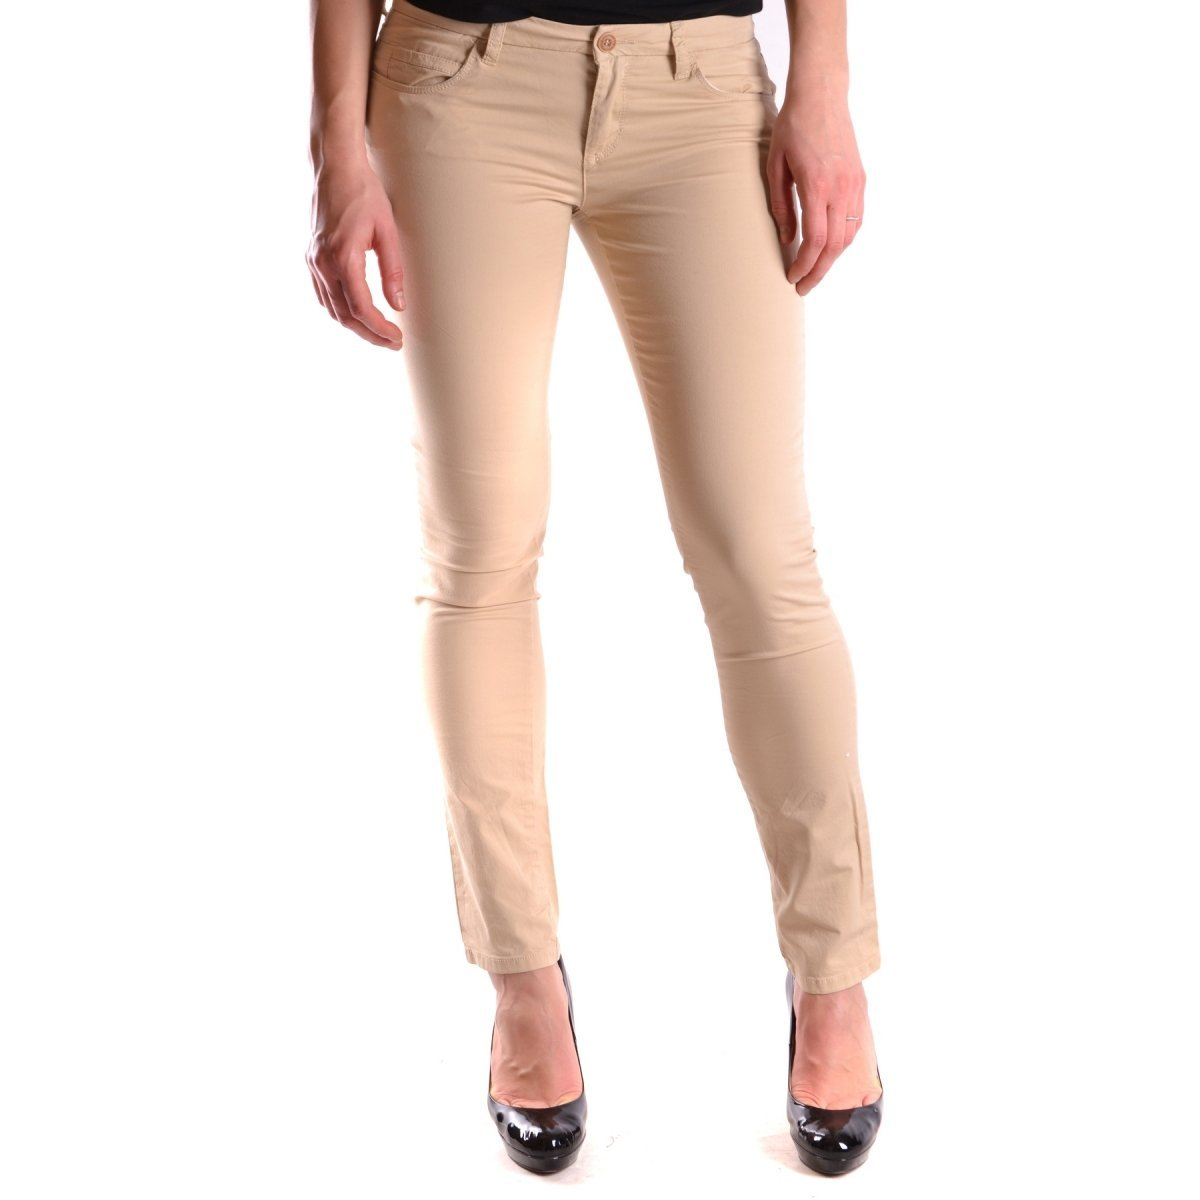 the best attitude 8c084 1f3bf Peuterey Jeans Beige at Amazon Women's Jeans store